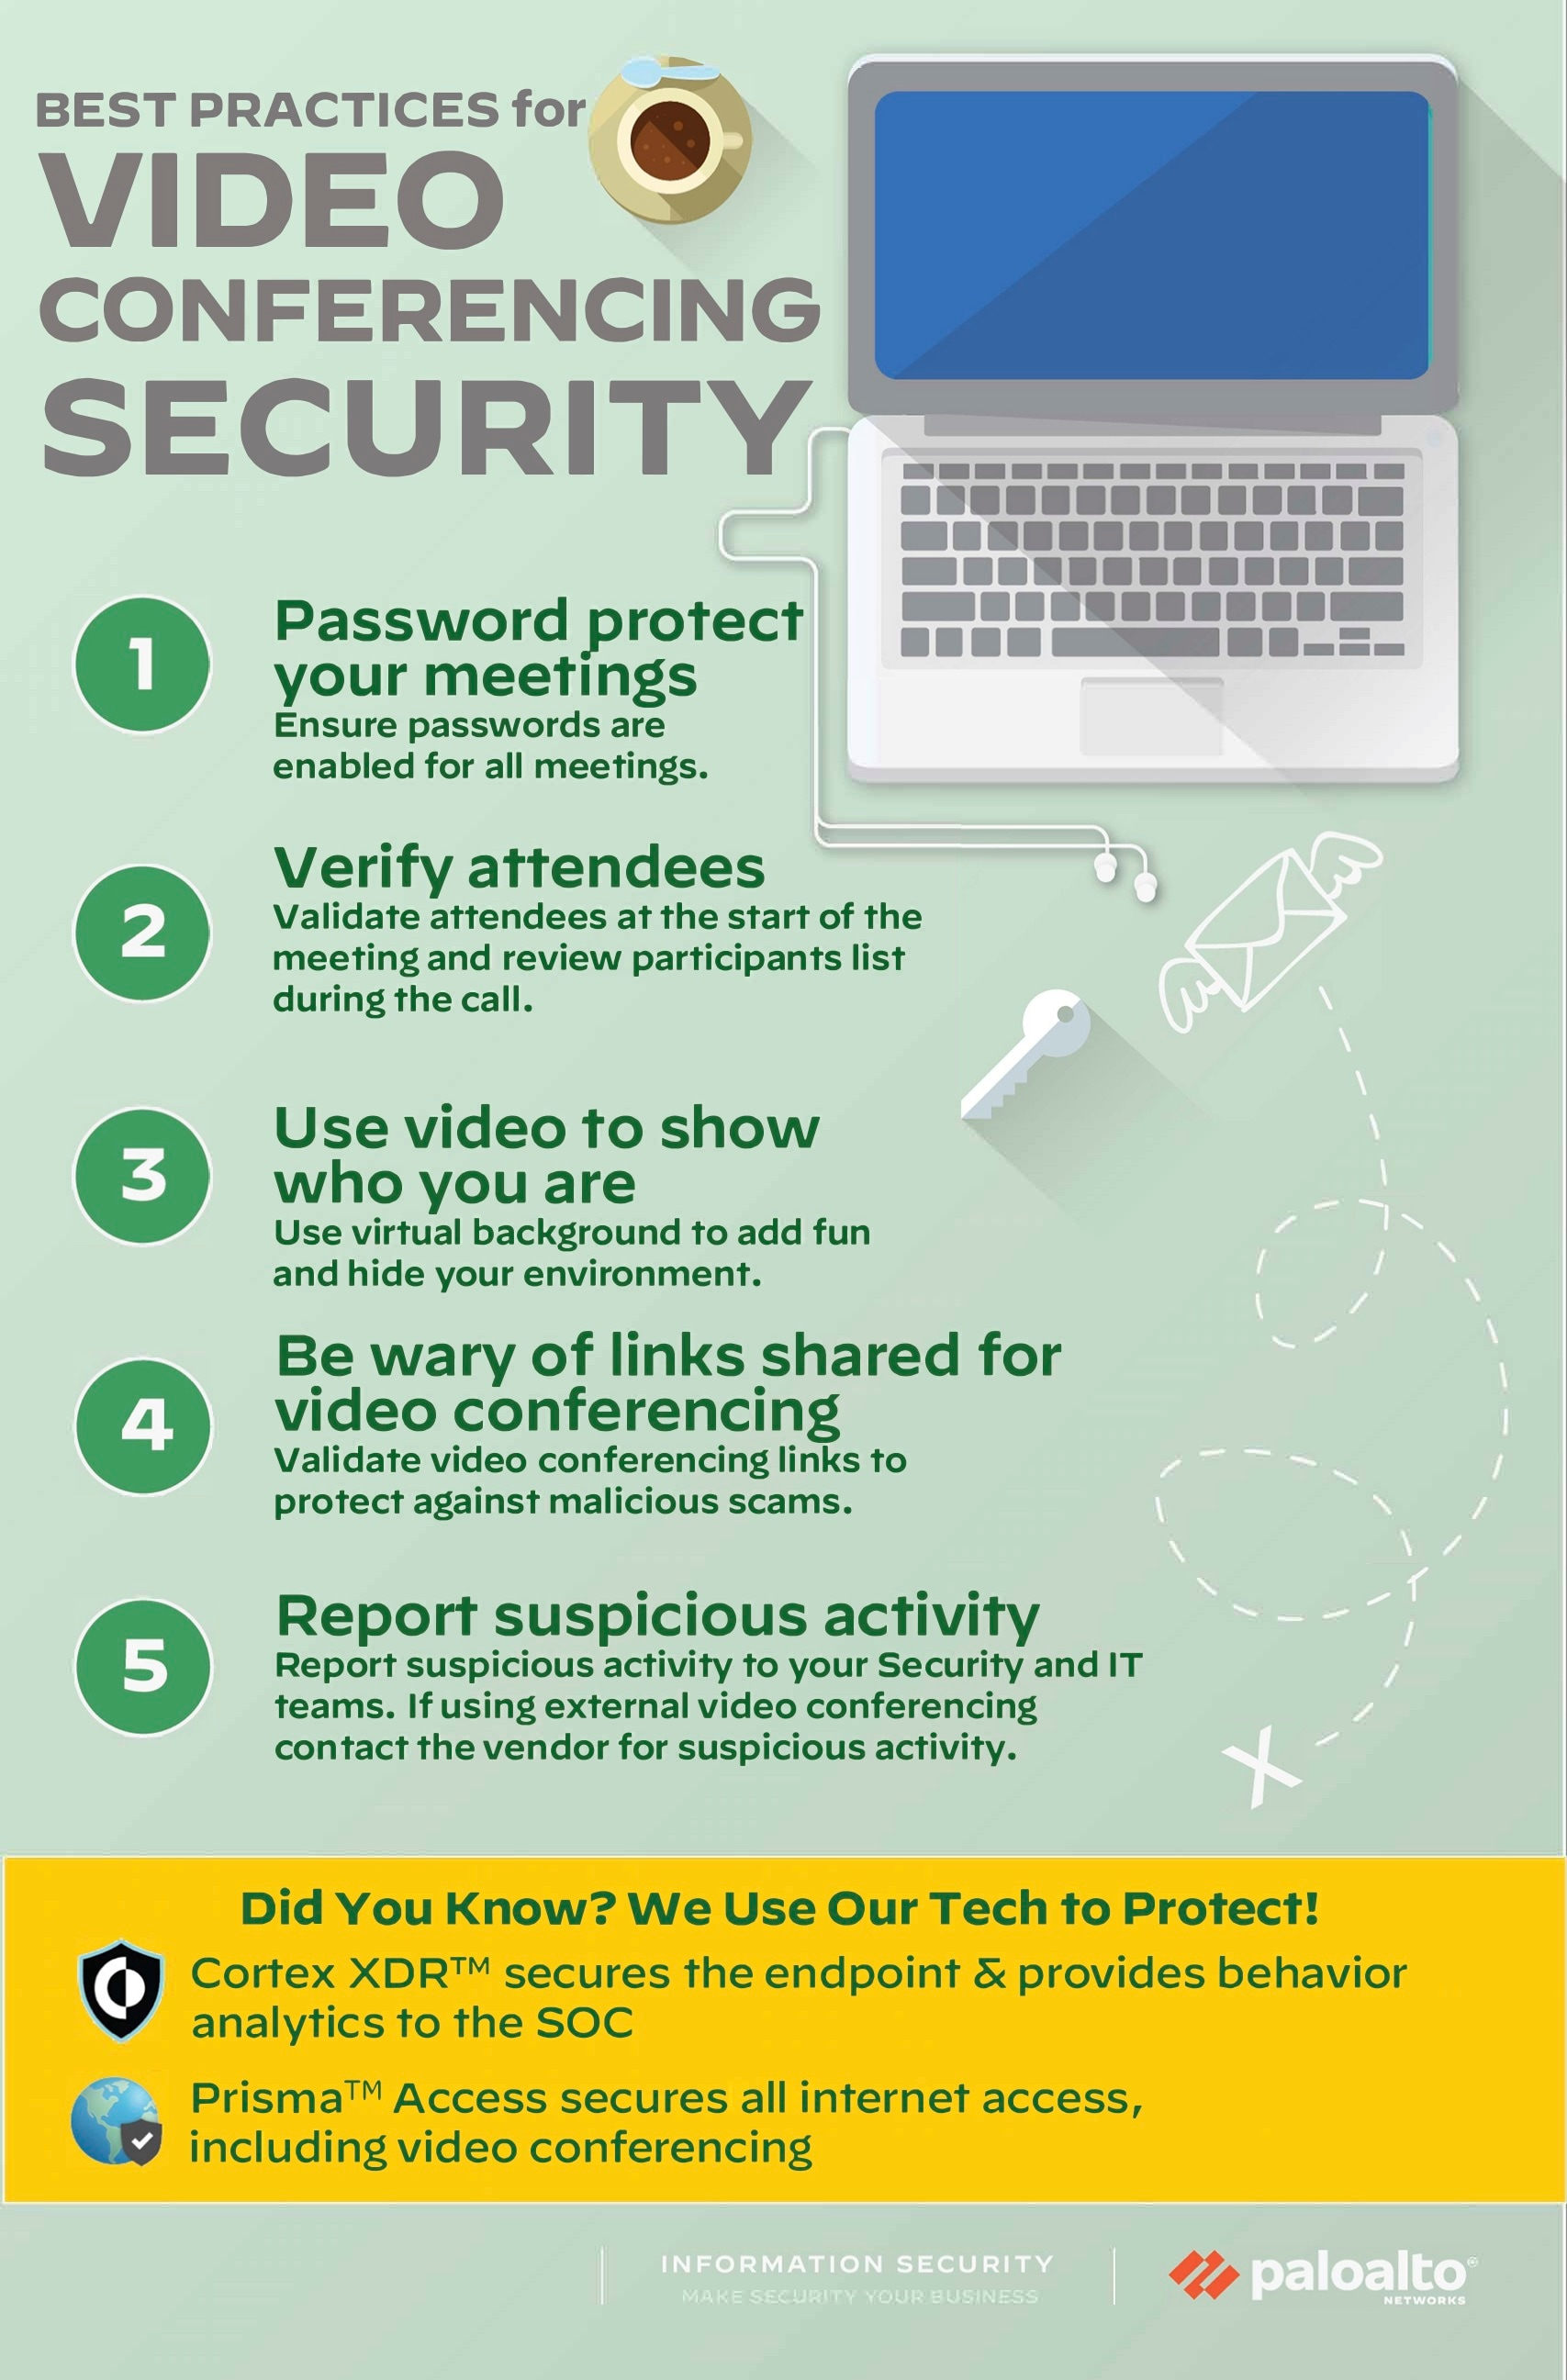 Best Practices for Video Conferencing Security